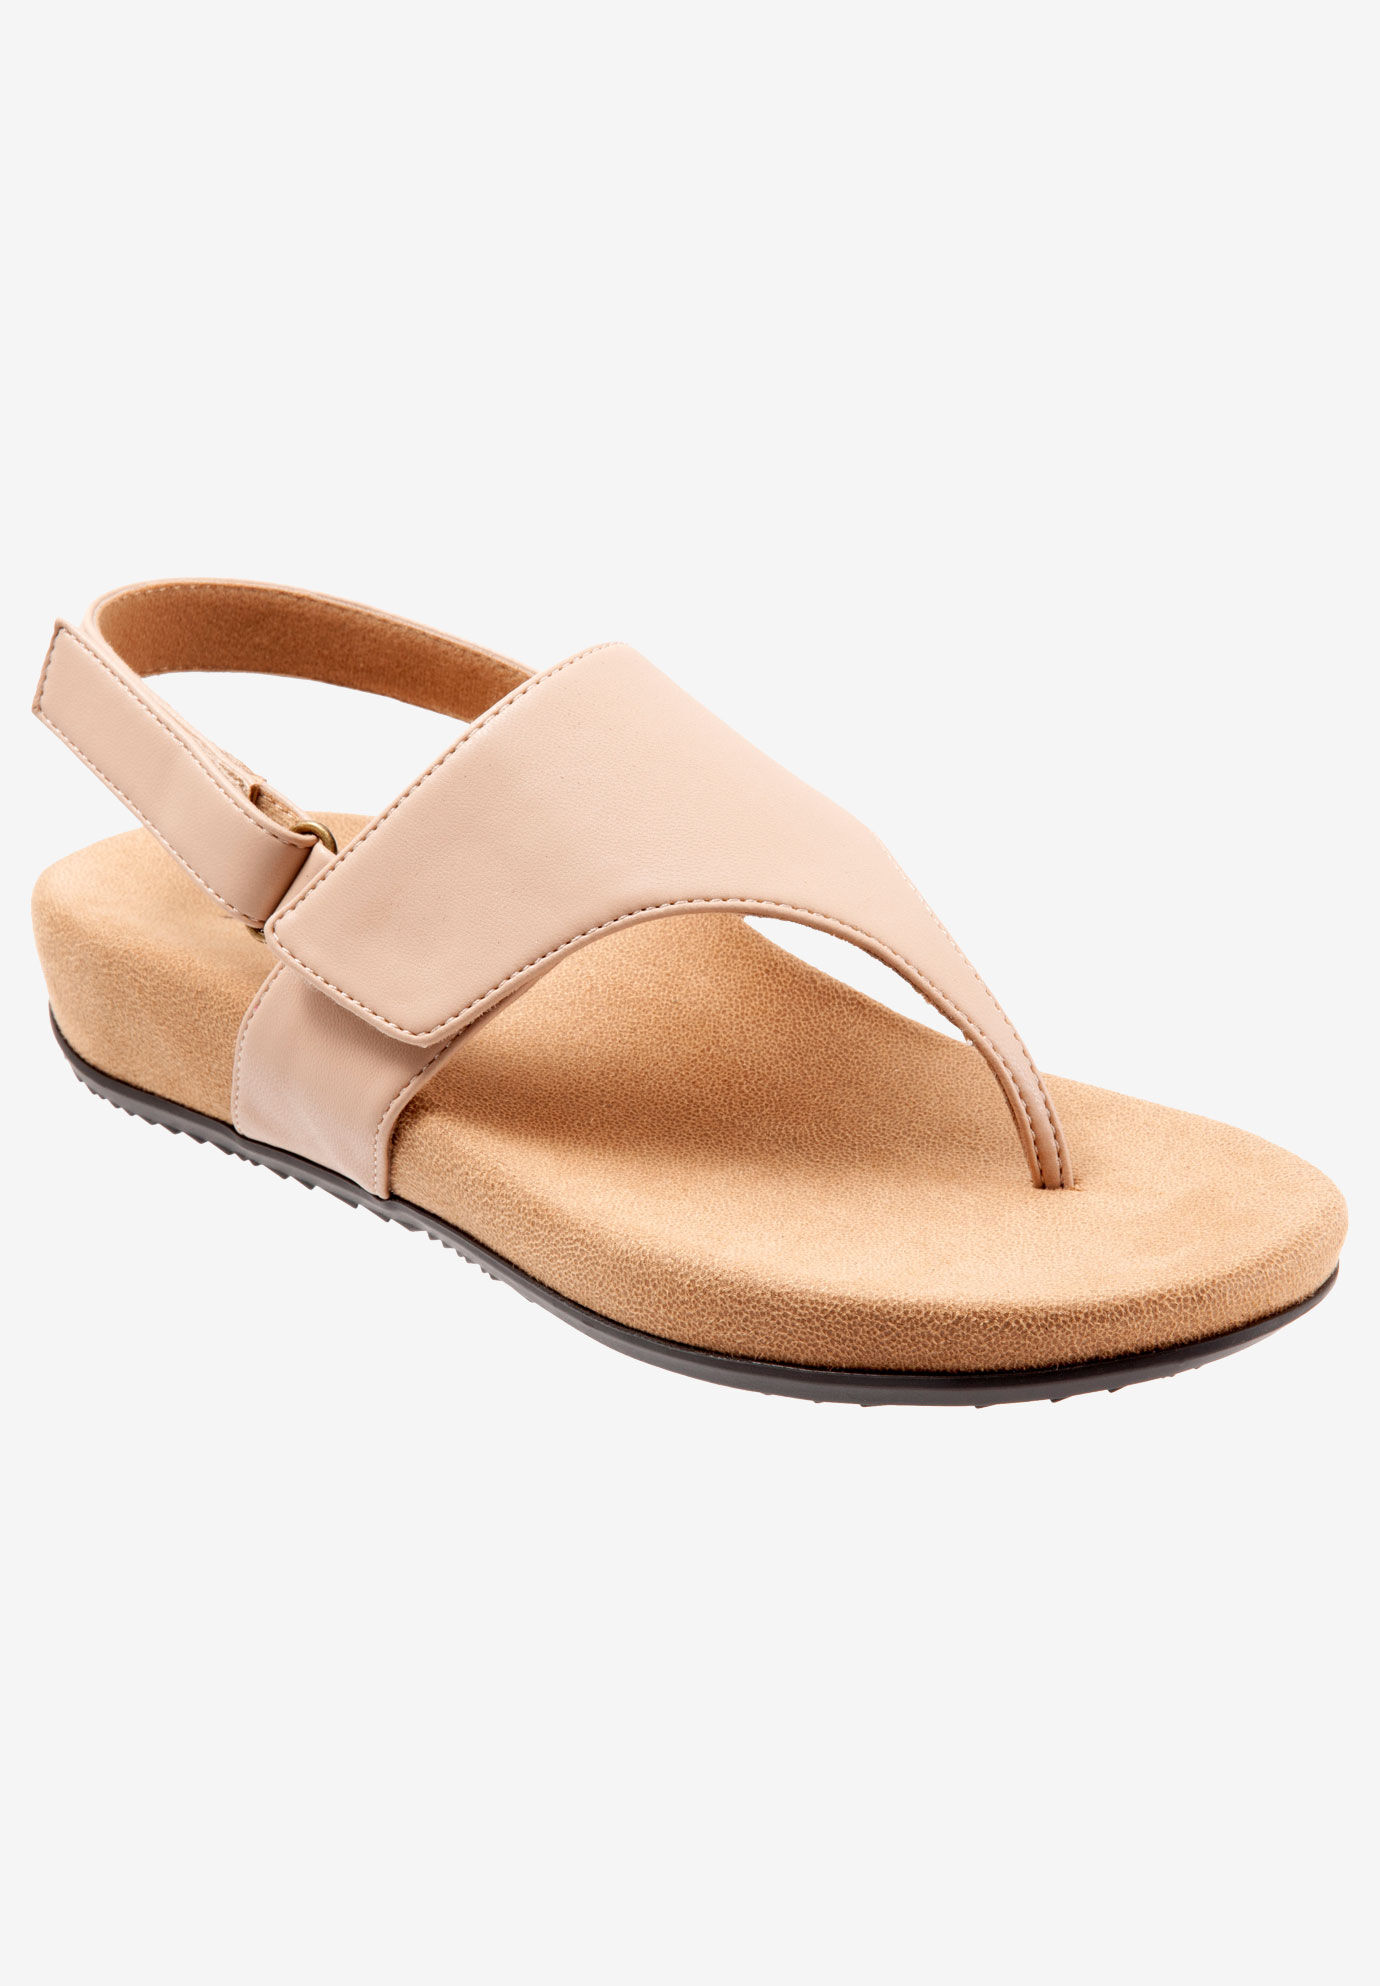 Wide \u0026 Extra Wide Width Sandals for